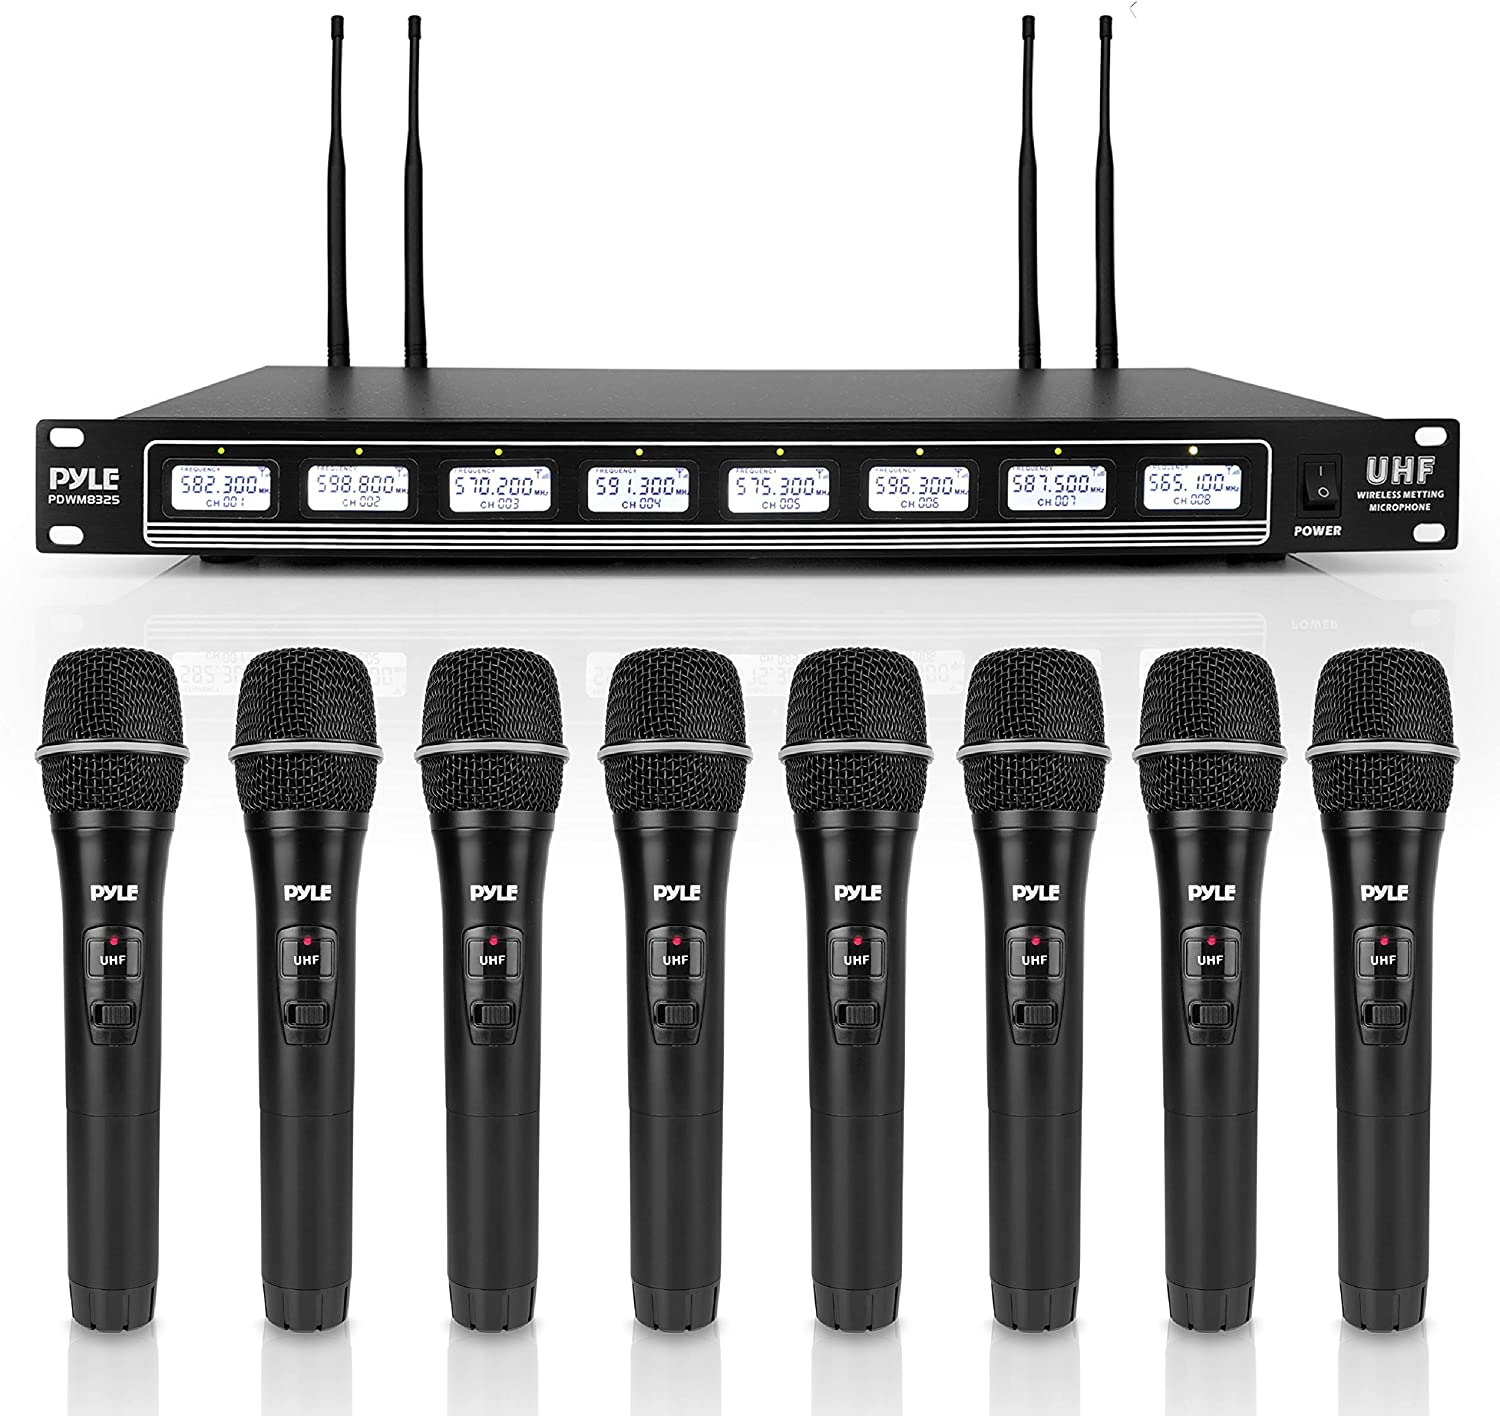 Pyle 8 Channel UHF Wireless Microphone & Rack Mountable Receiver Audio Sound System 8 Handheld Mics Independent Channel Volume Control LCD Digital Display Integrated Noise Filtration (PDWM8325), Black